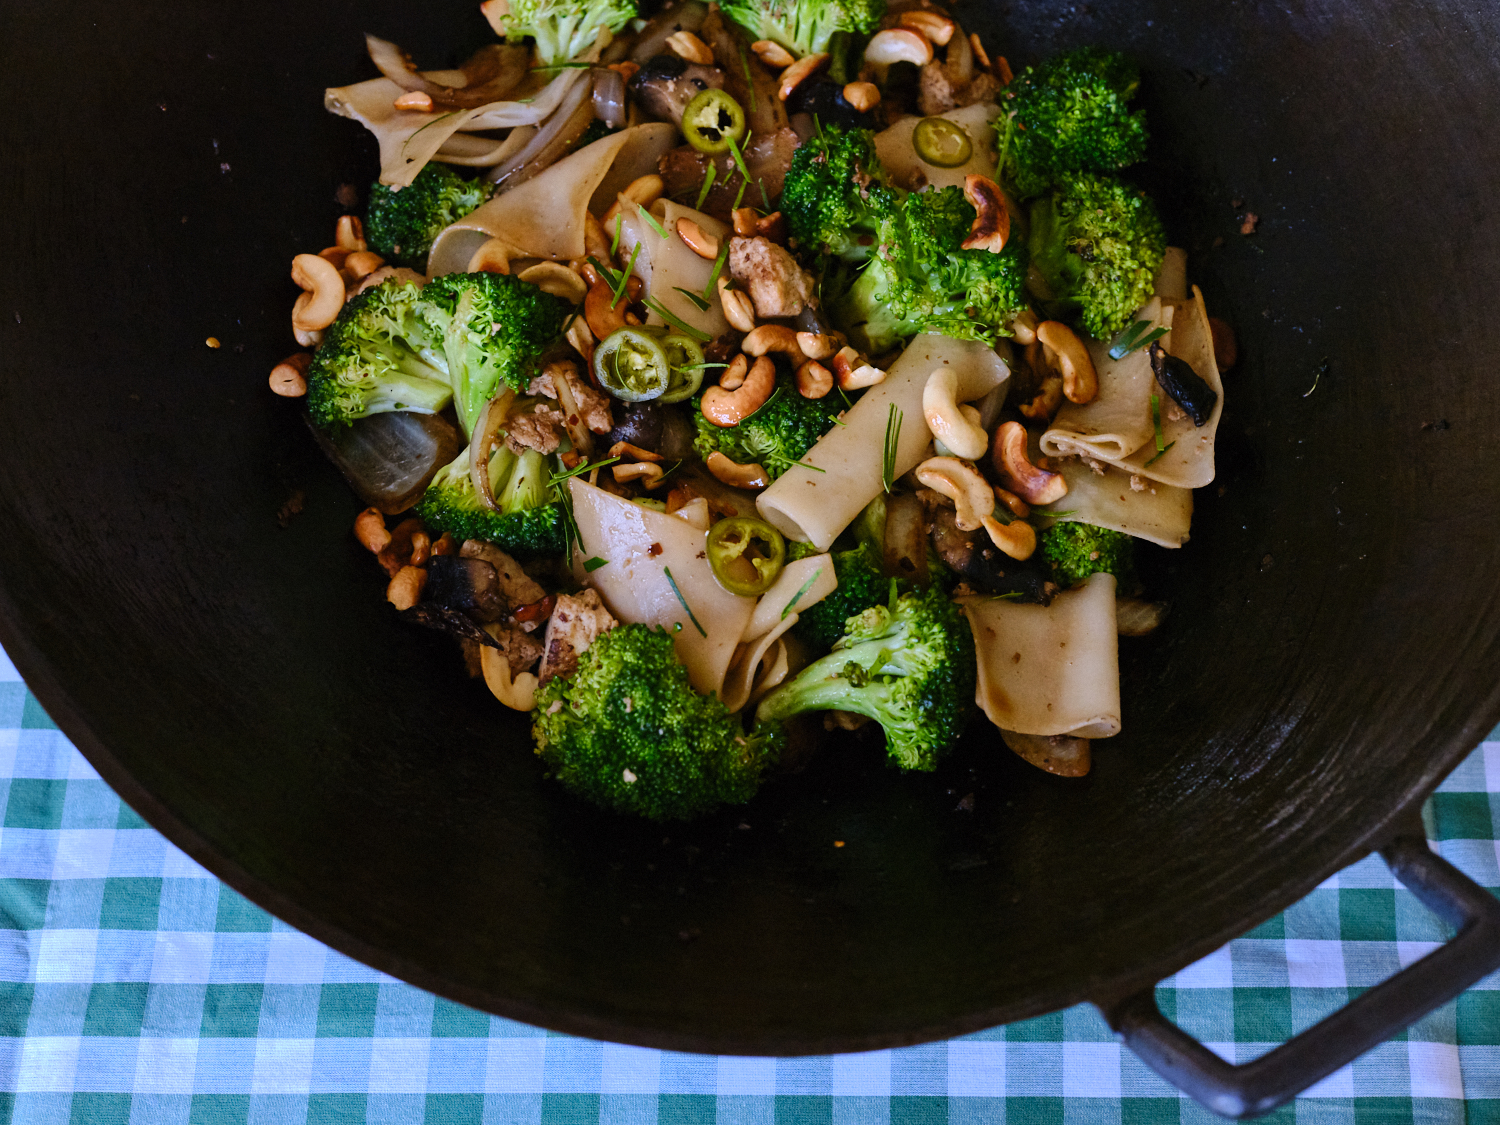 A Favorite Rice Noodle Stir Fry to Make with Whatever Green Veg you Have